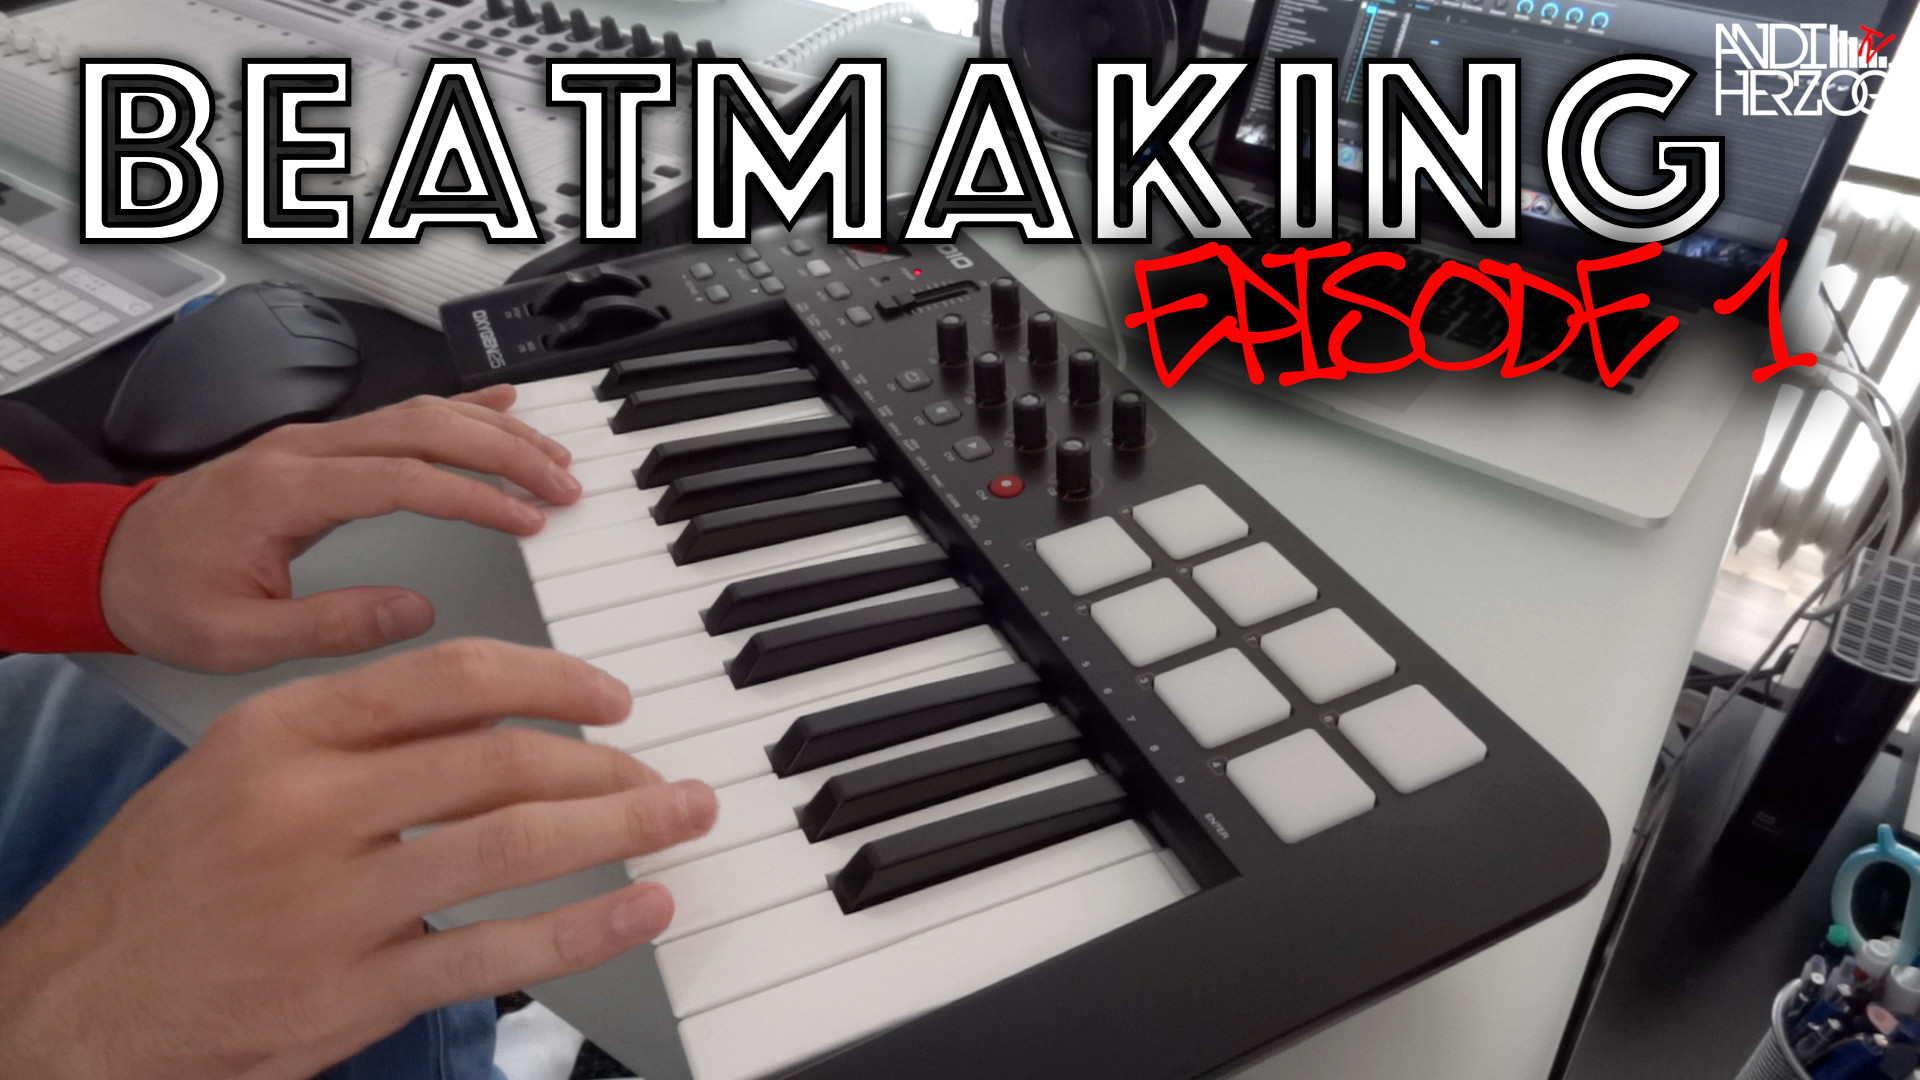 Beatmaking Episode 1 - Titelbild